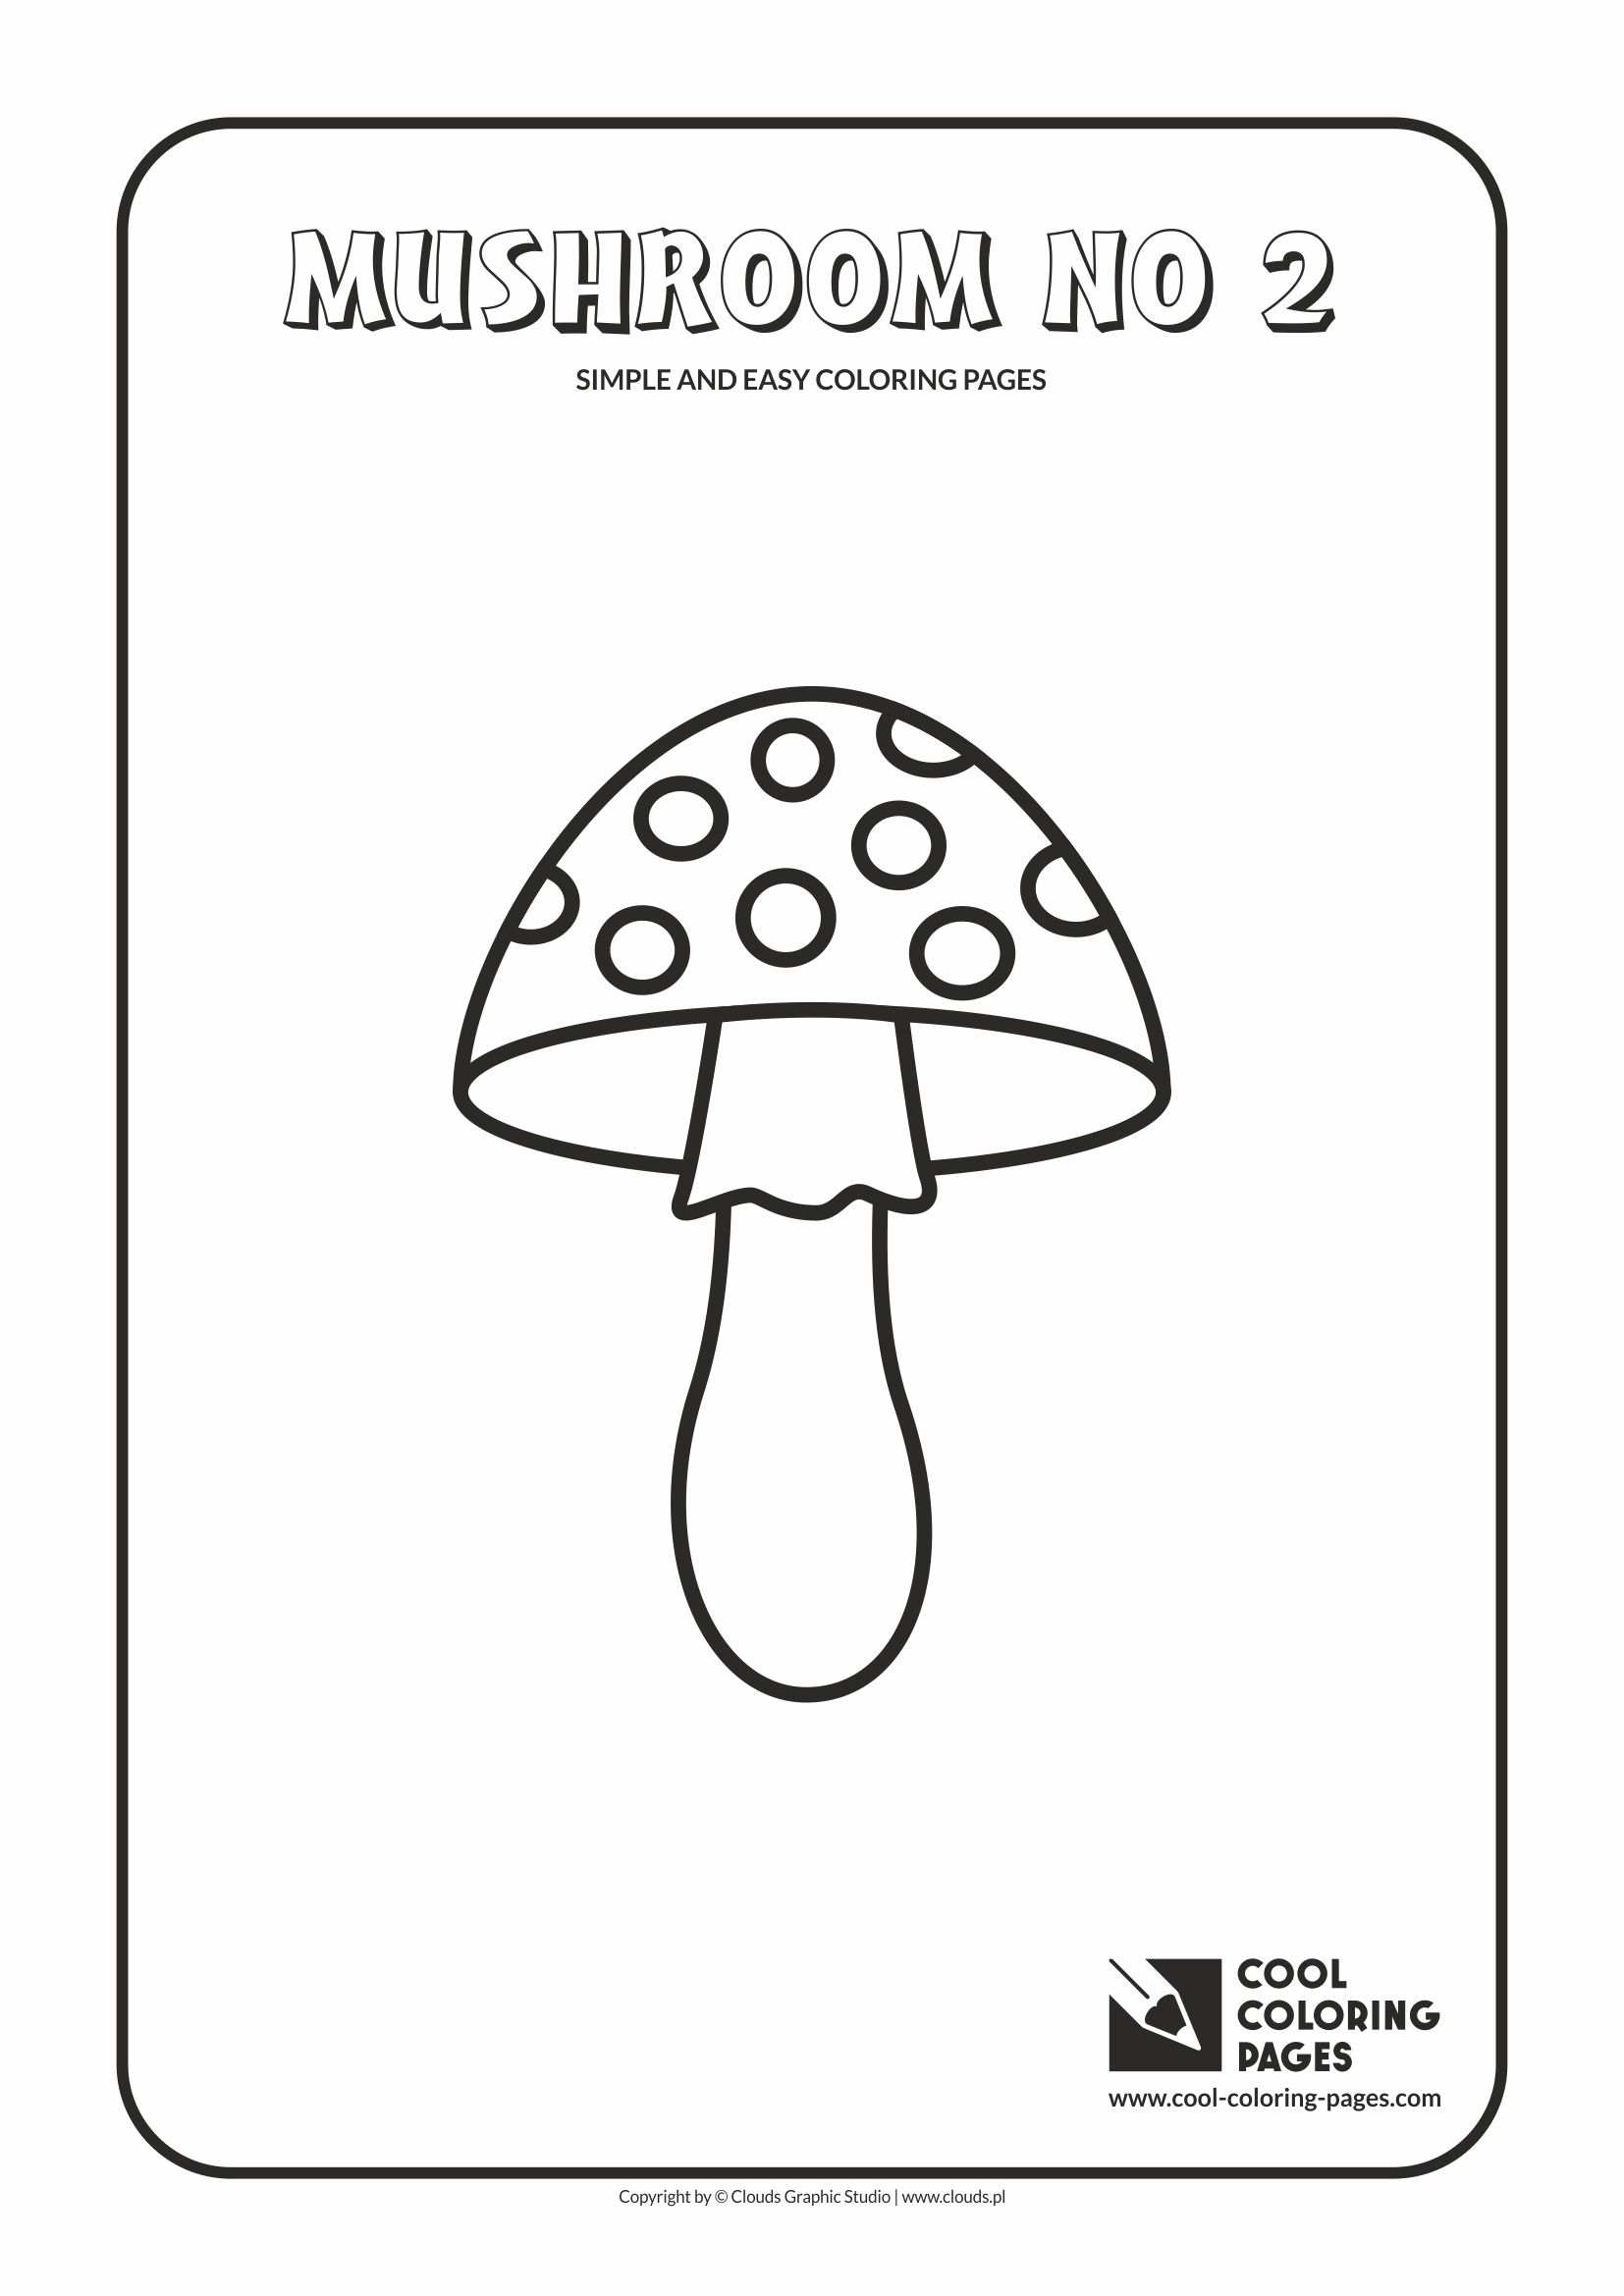 simple and easy coloring pages for toddlers mushroom no 2 - Easy Coloring Pages 2